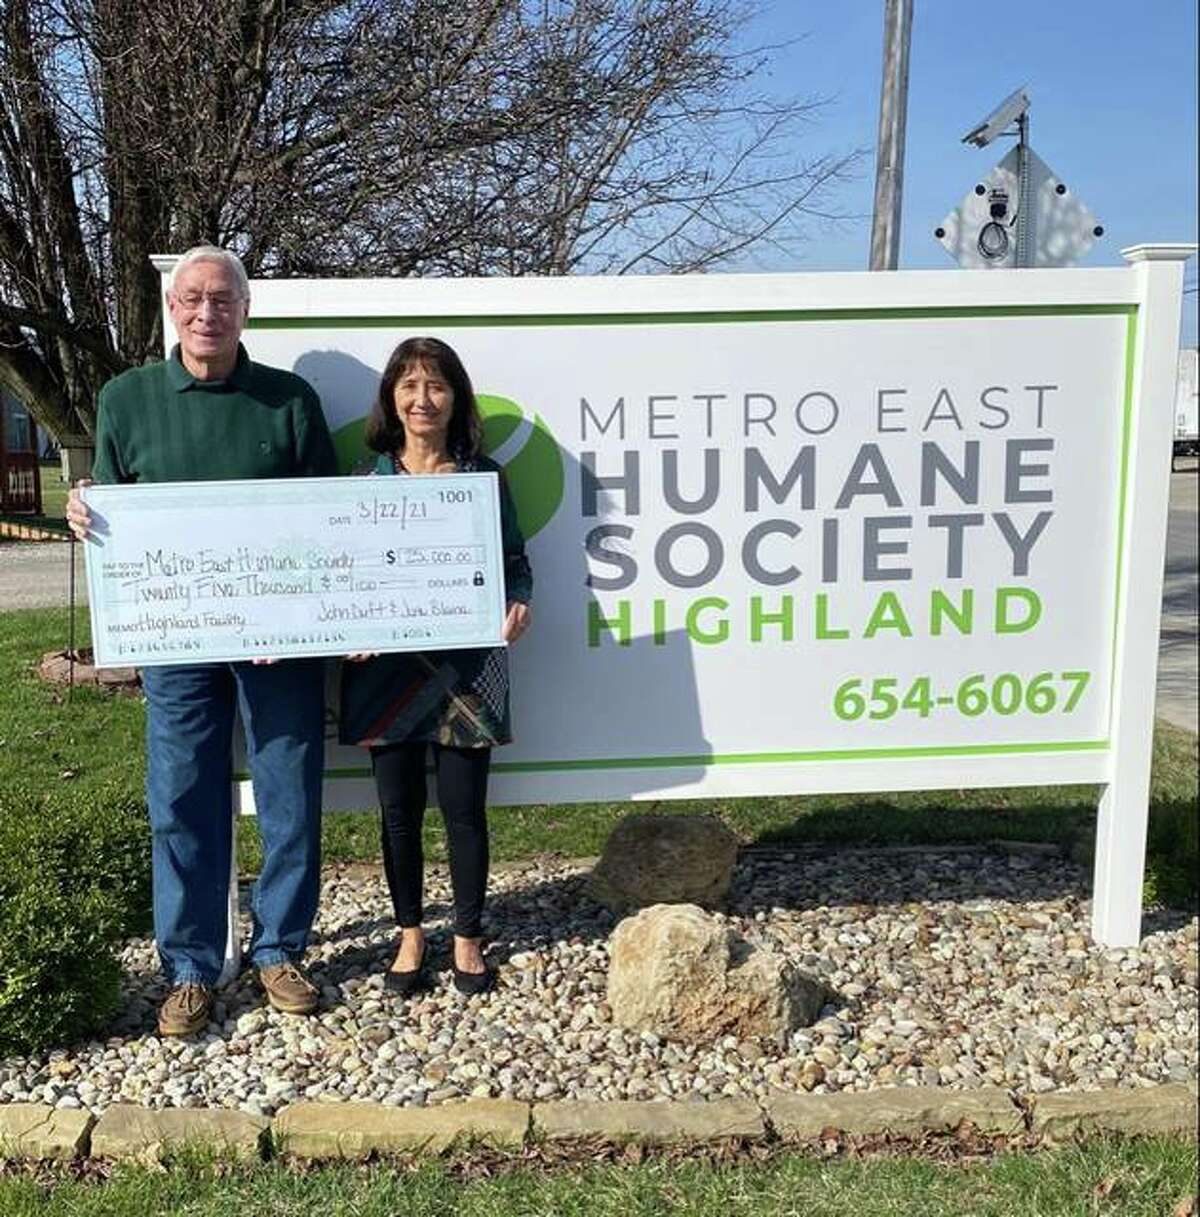 John Duft and June Blaine of Highland kickstarted the Metro East Humane Society's $175,000 capital campaign for its Highland and Edwardsville facilities. Purina also has donated $10,000 to the campaign.